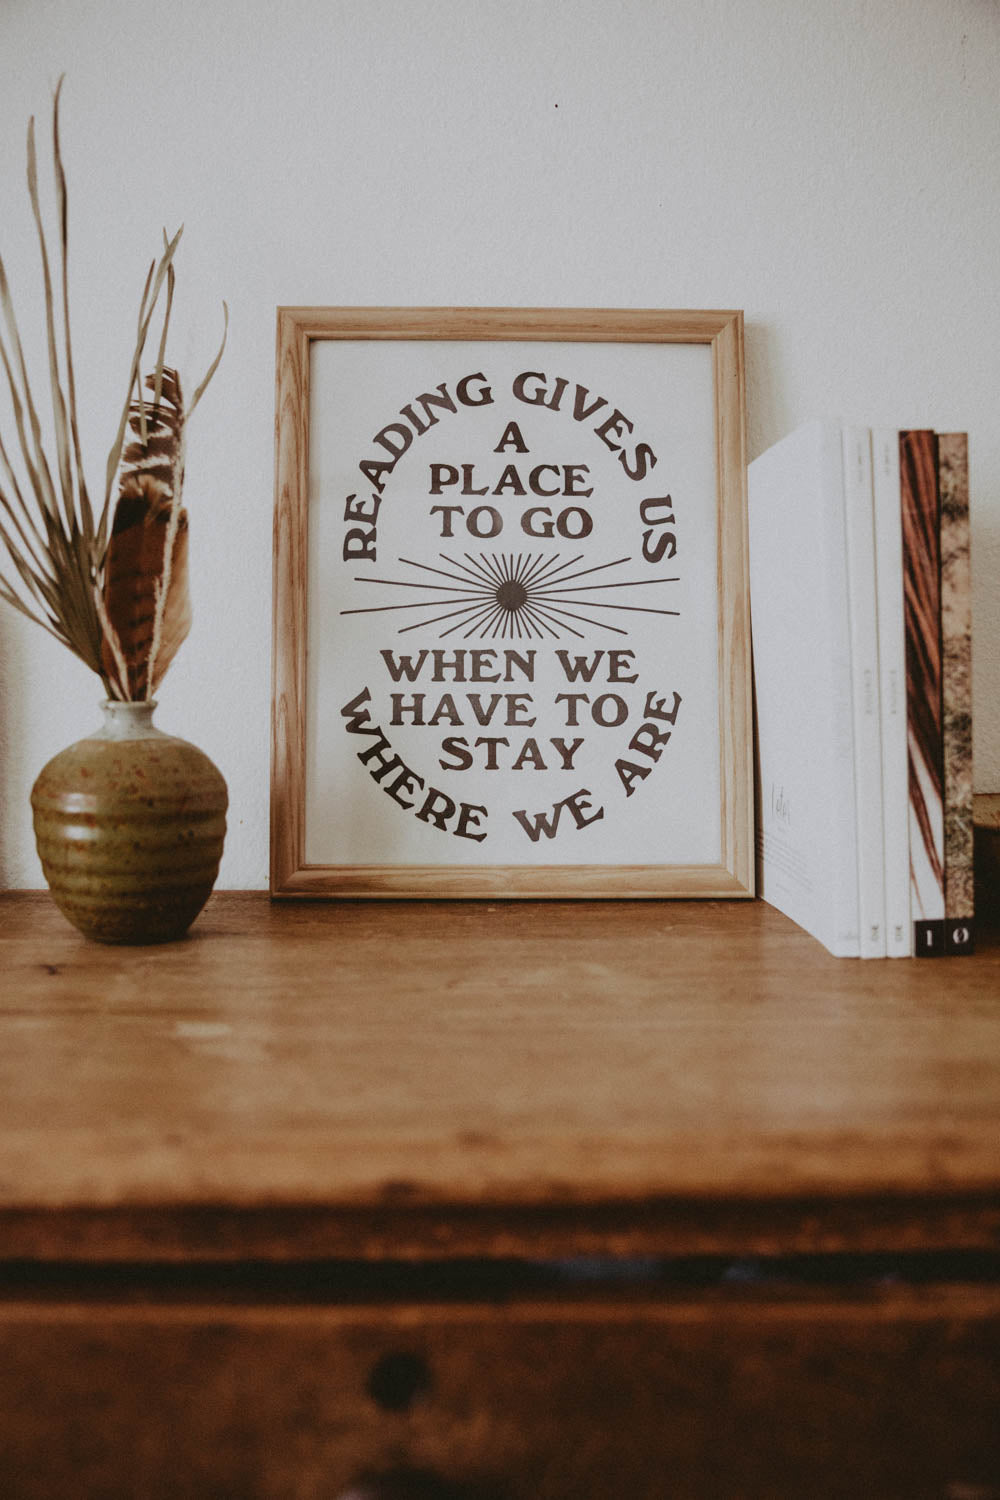 Letterpress: Reading Gives Us a Place to Go...